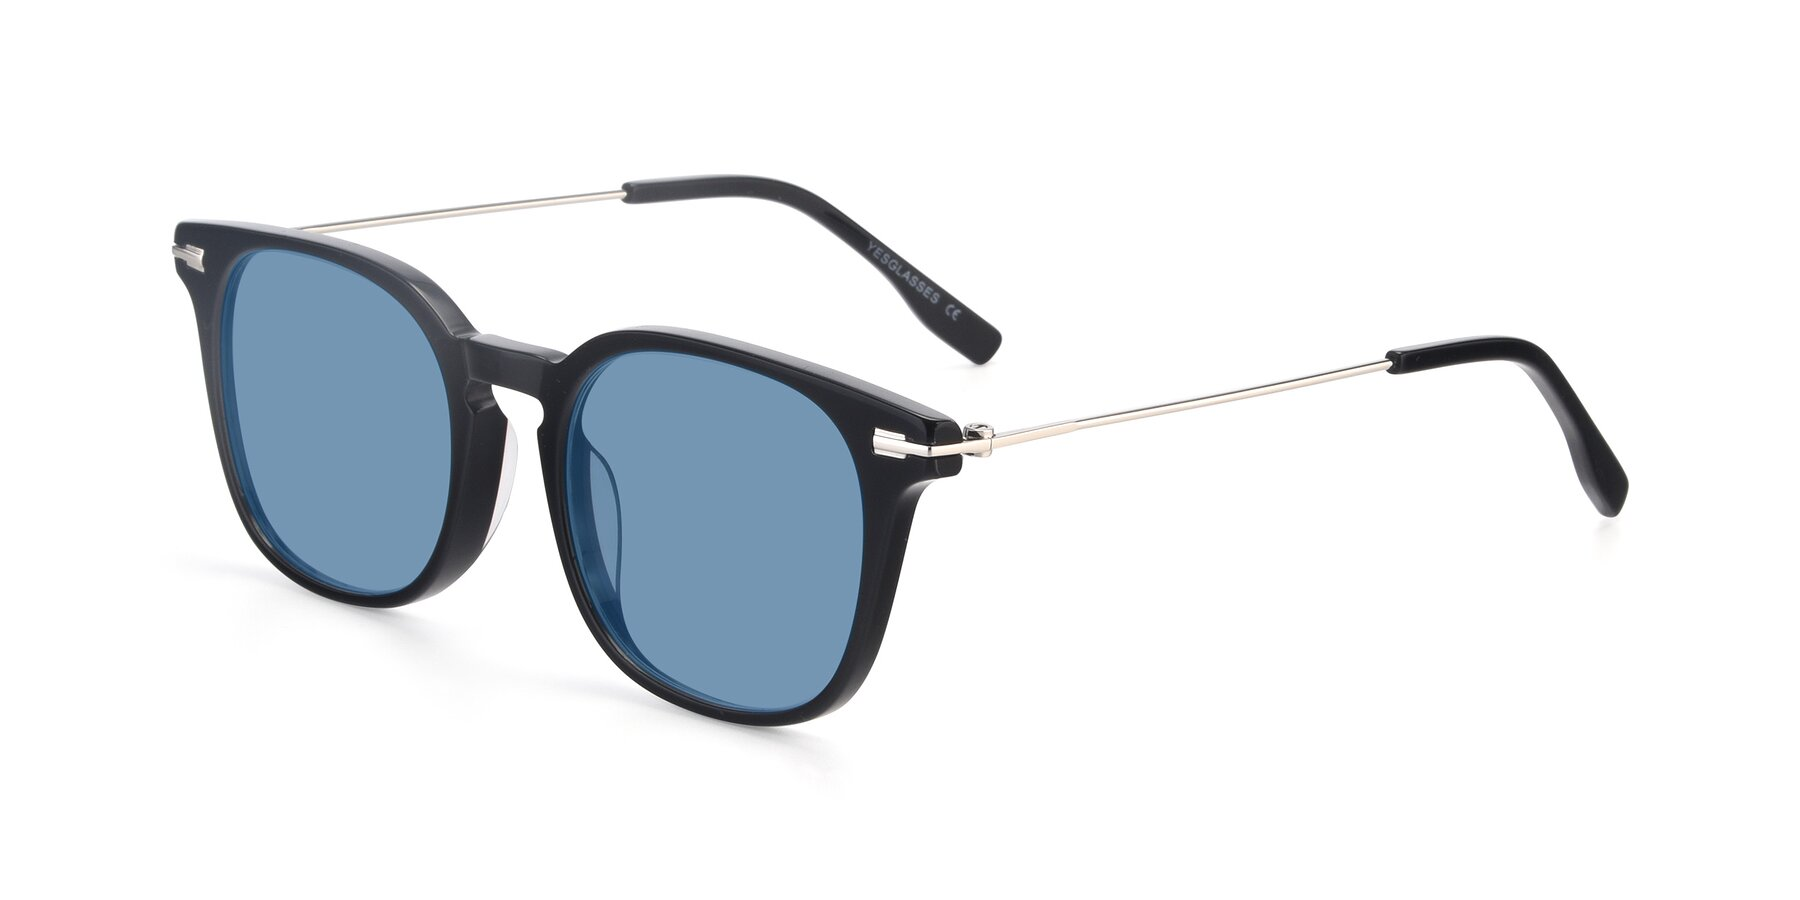 Angle of 17711 in Black with Medium Blue Tinted Lenses